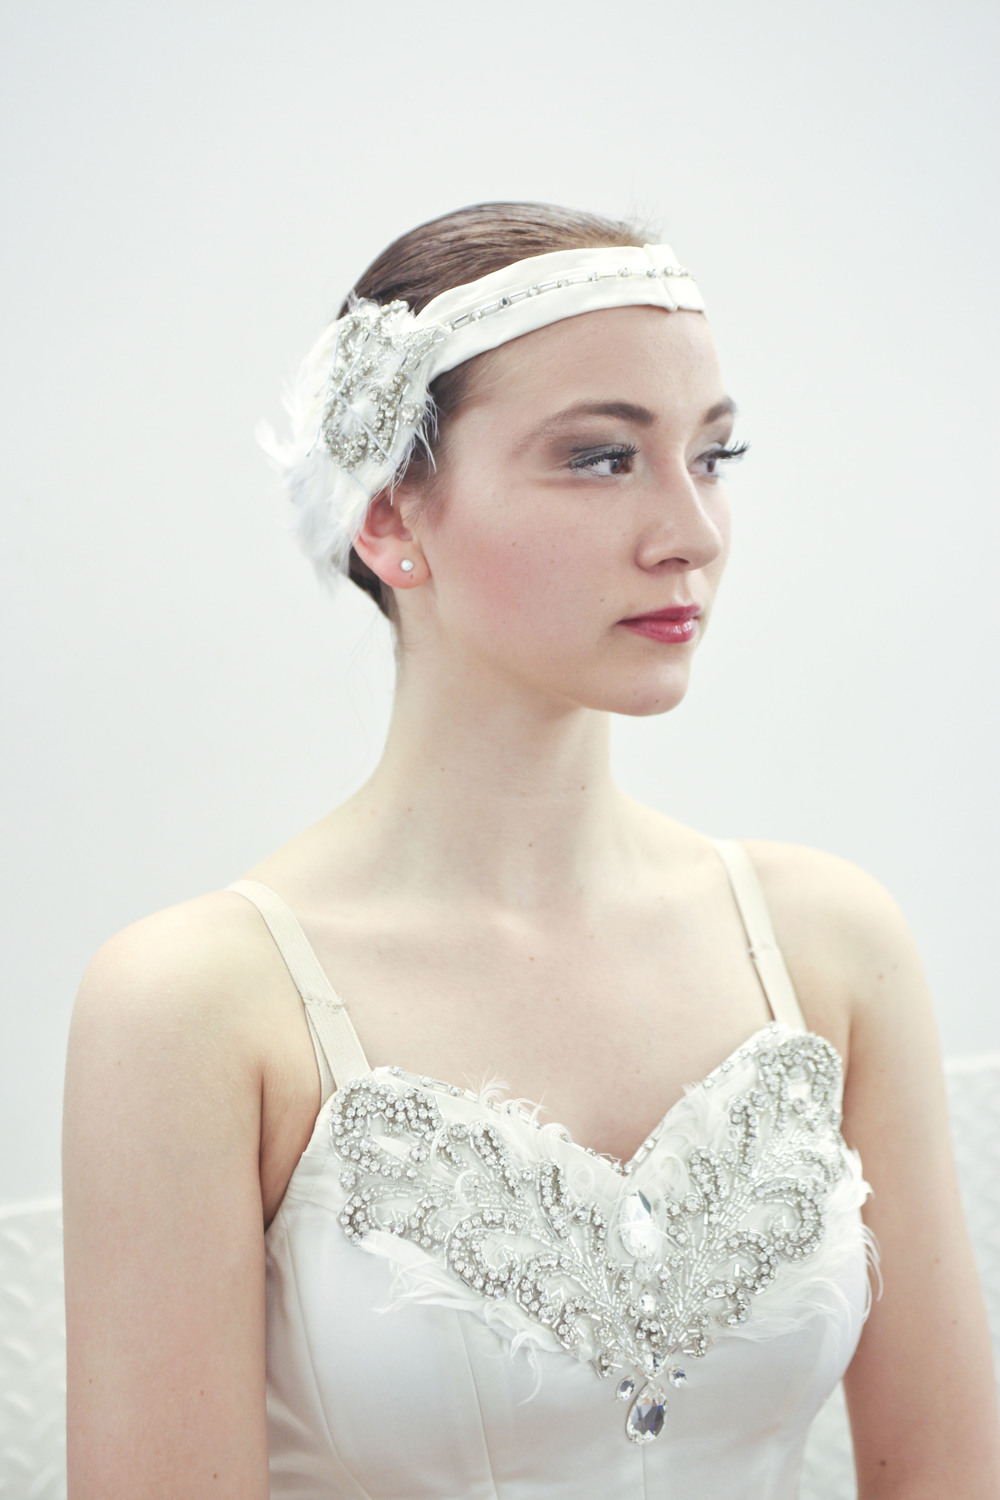 The Royal Danish Ballet's Benita Bunger as Odette